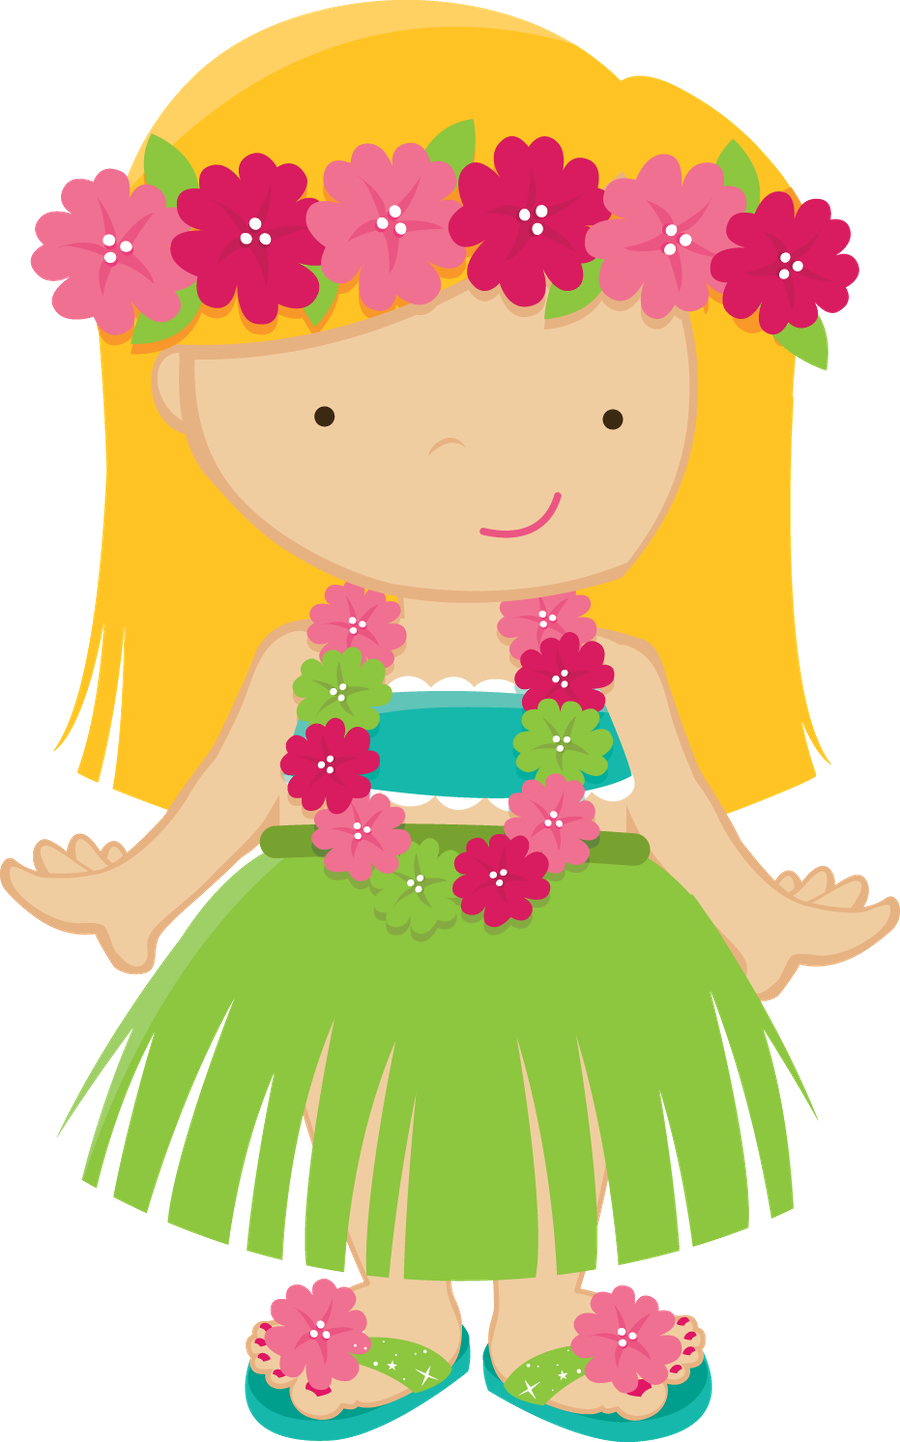 Zwd hula girl png. Number 3 clipart girly